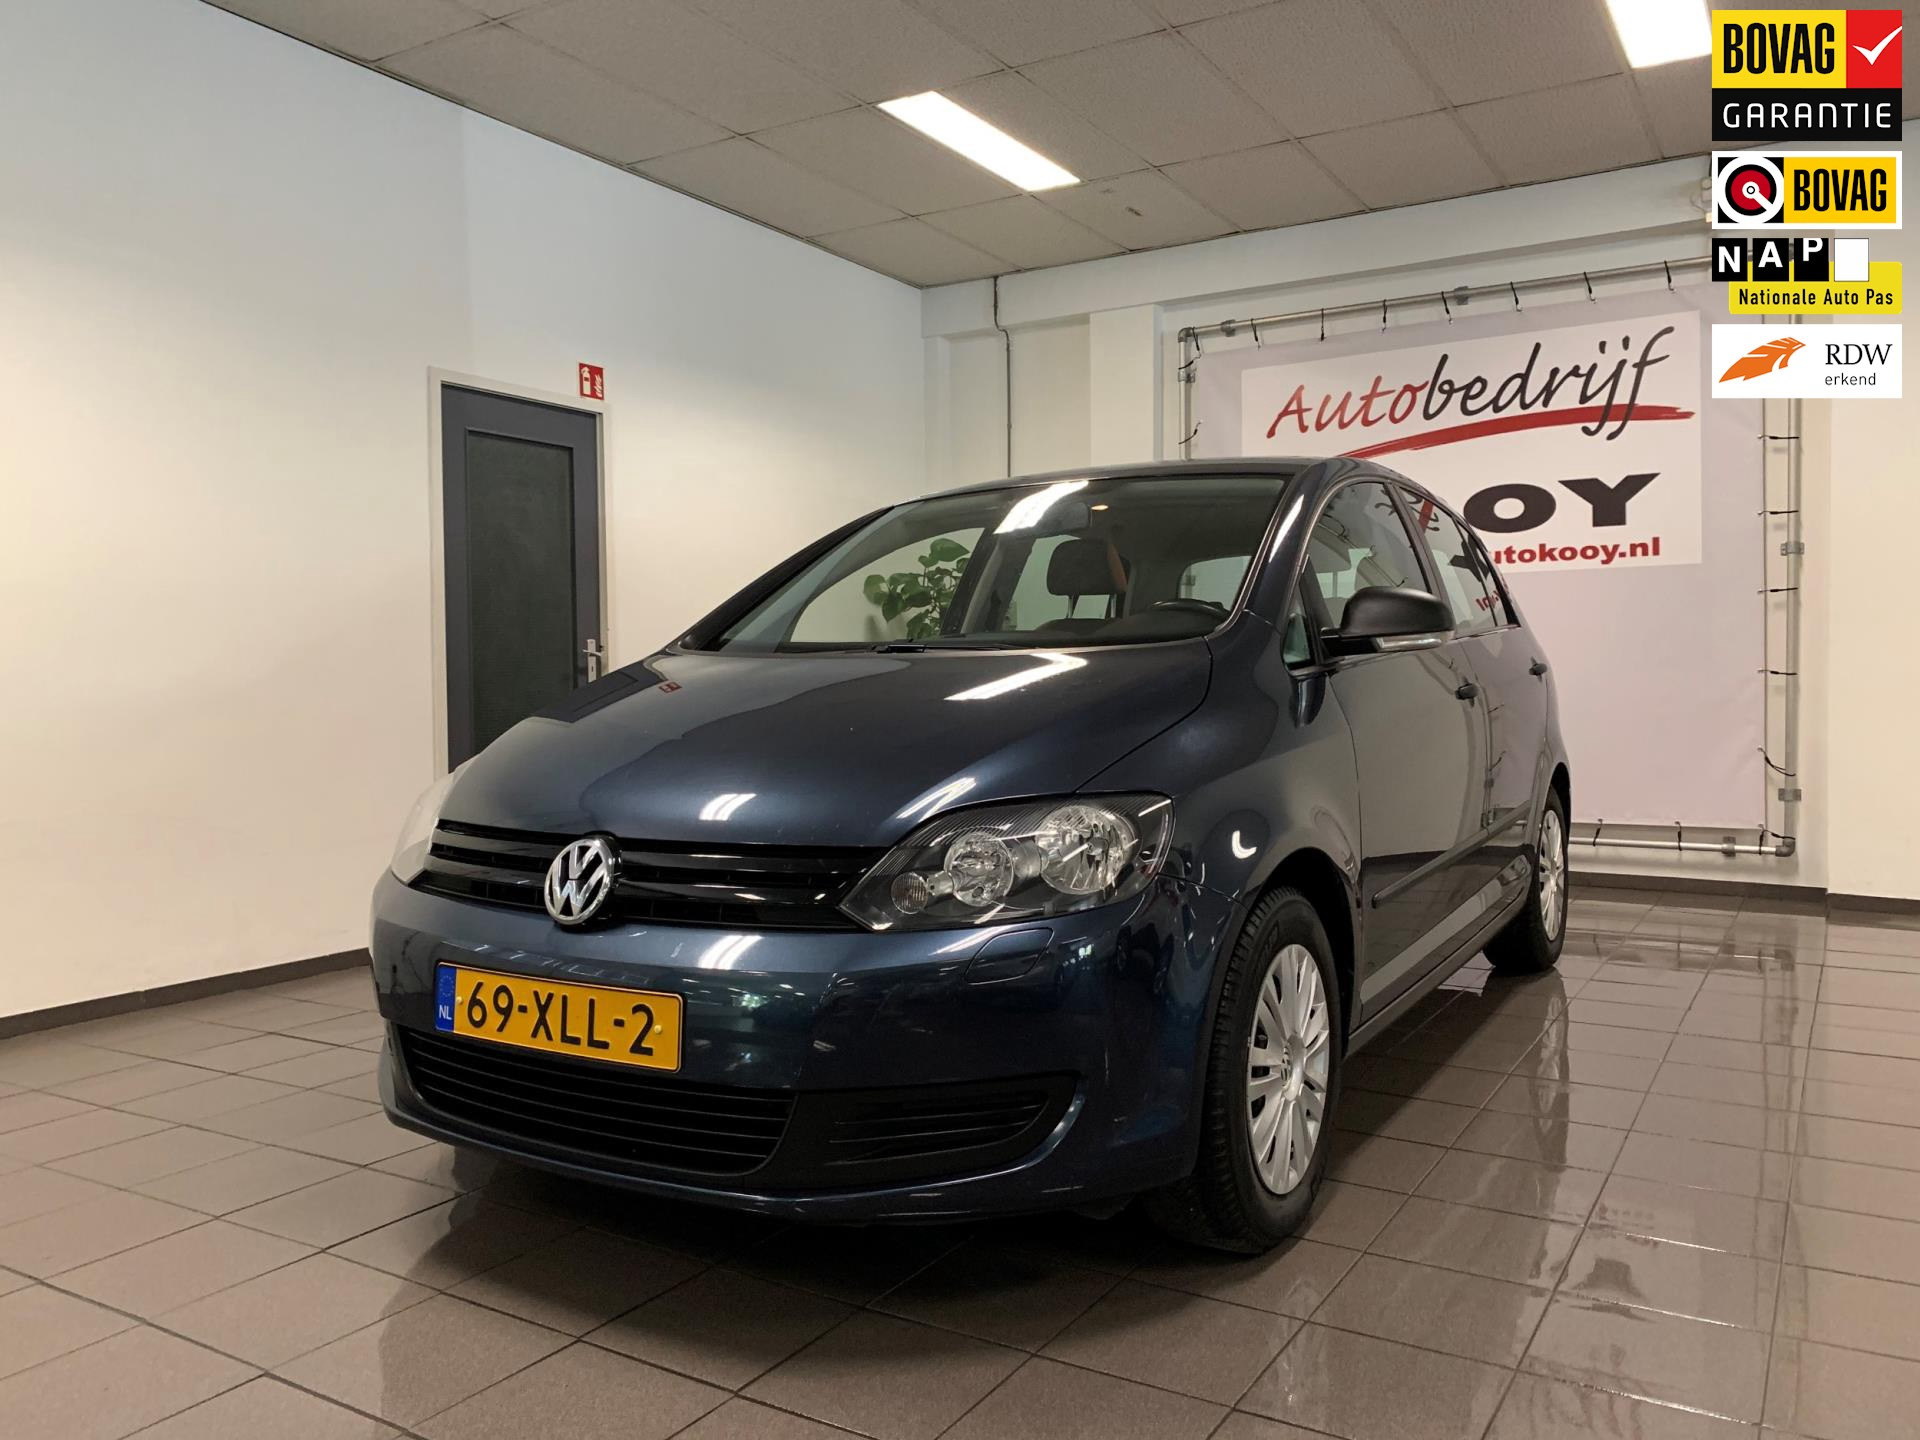 Volkswagen Golf Plus 1.2 TSI * Airco / Navigatie / Trekhaak *